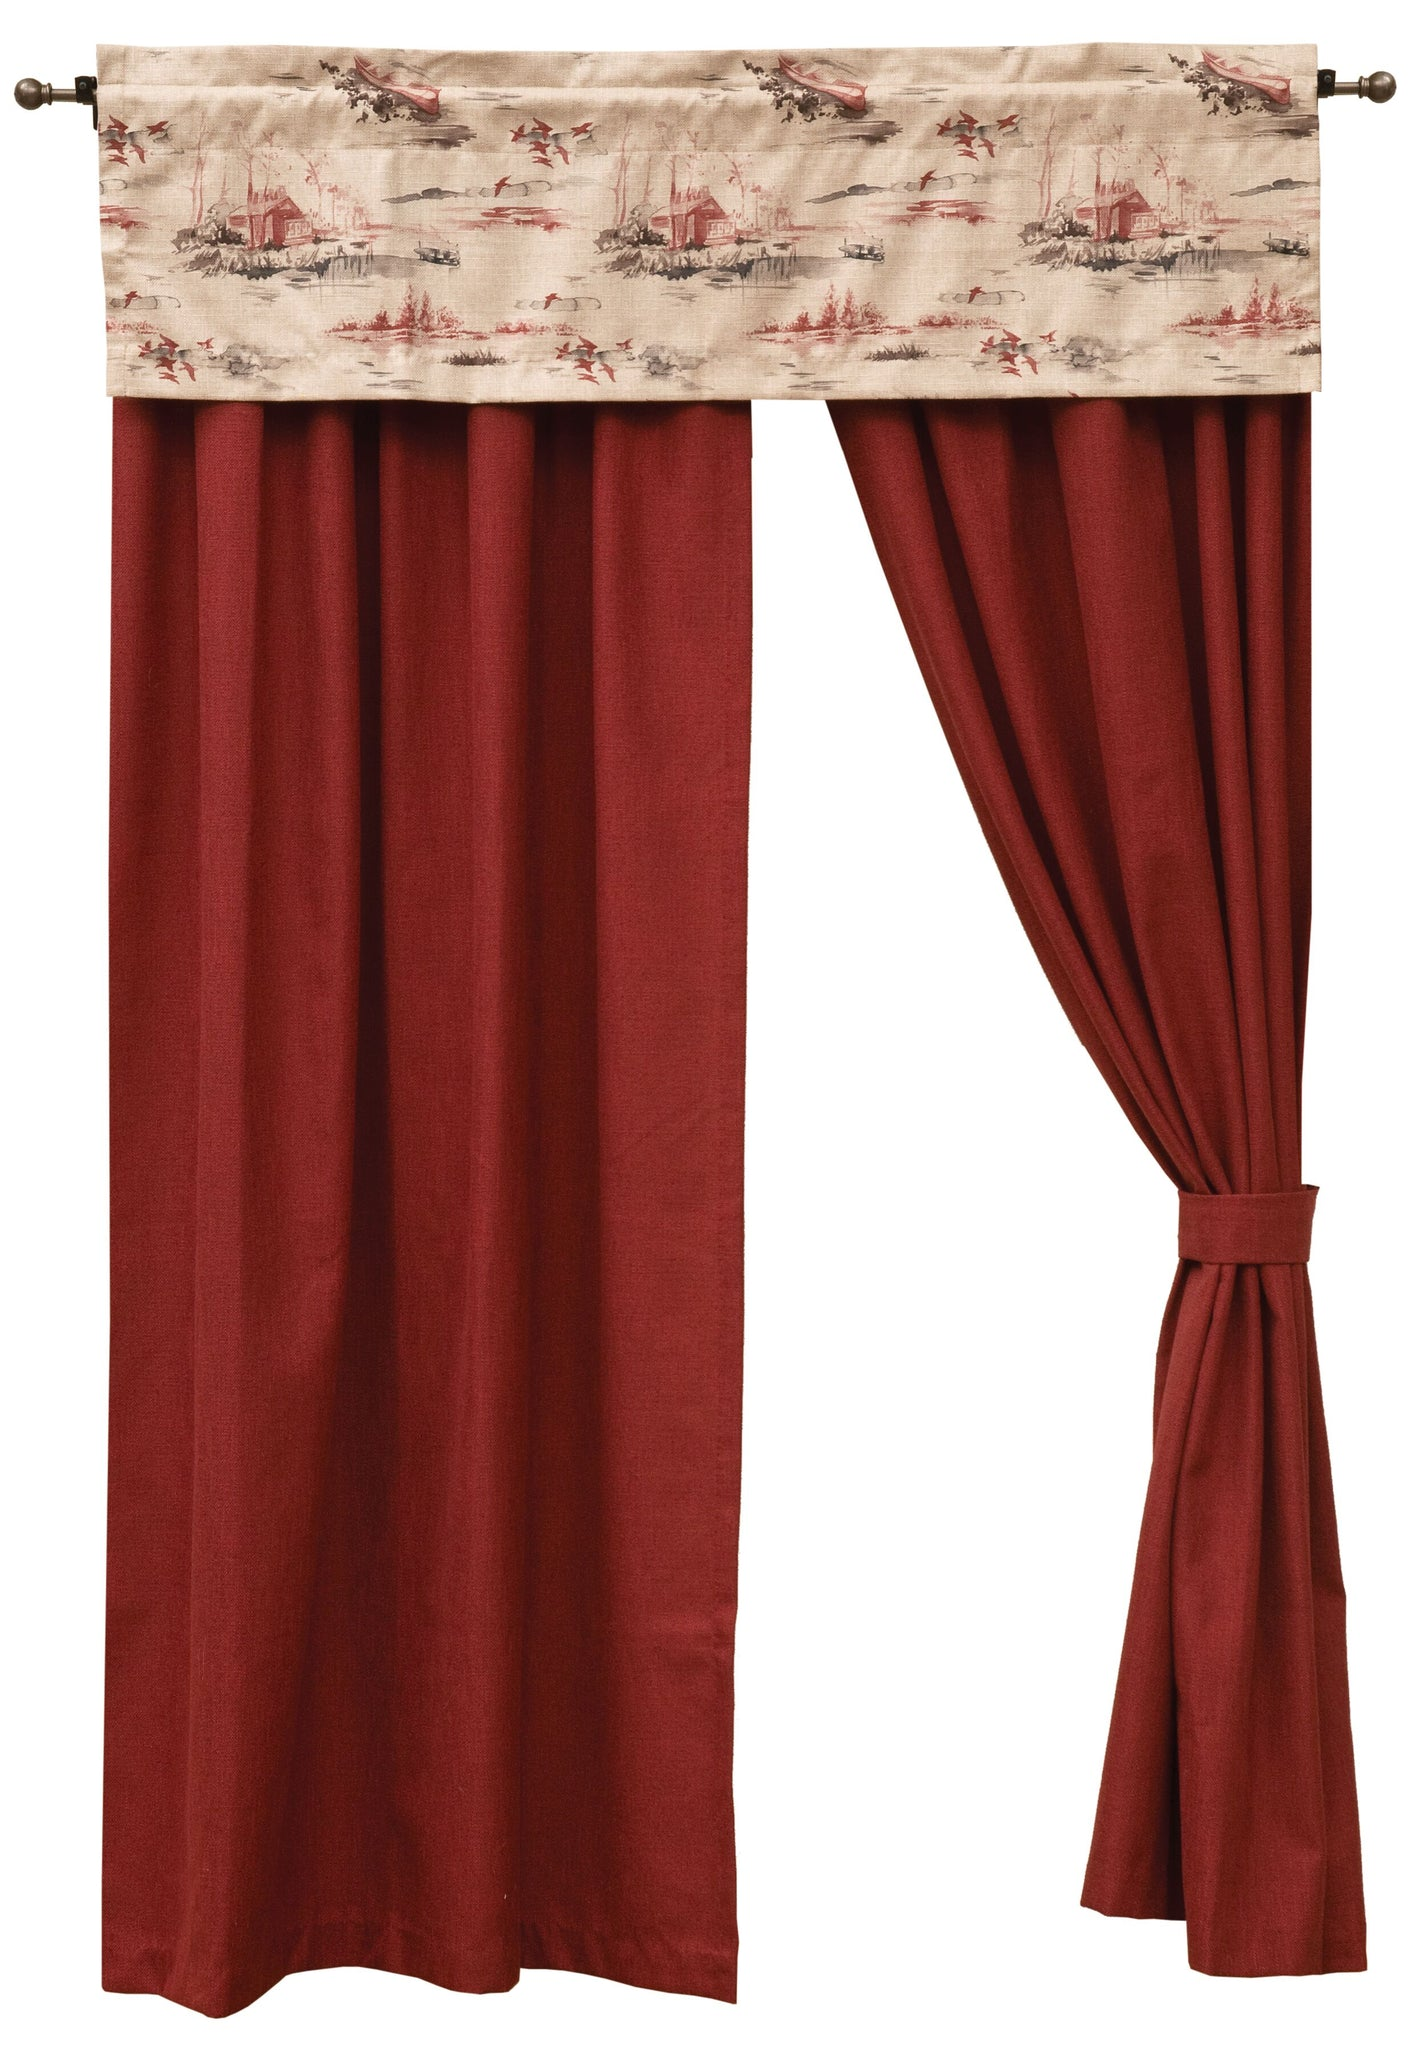 Cimarron Drape Sets Wooded River - unique linens online